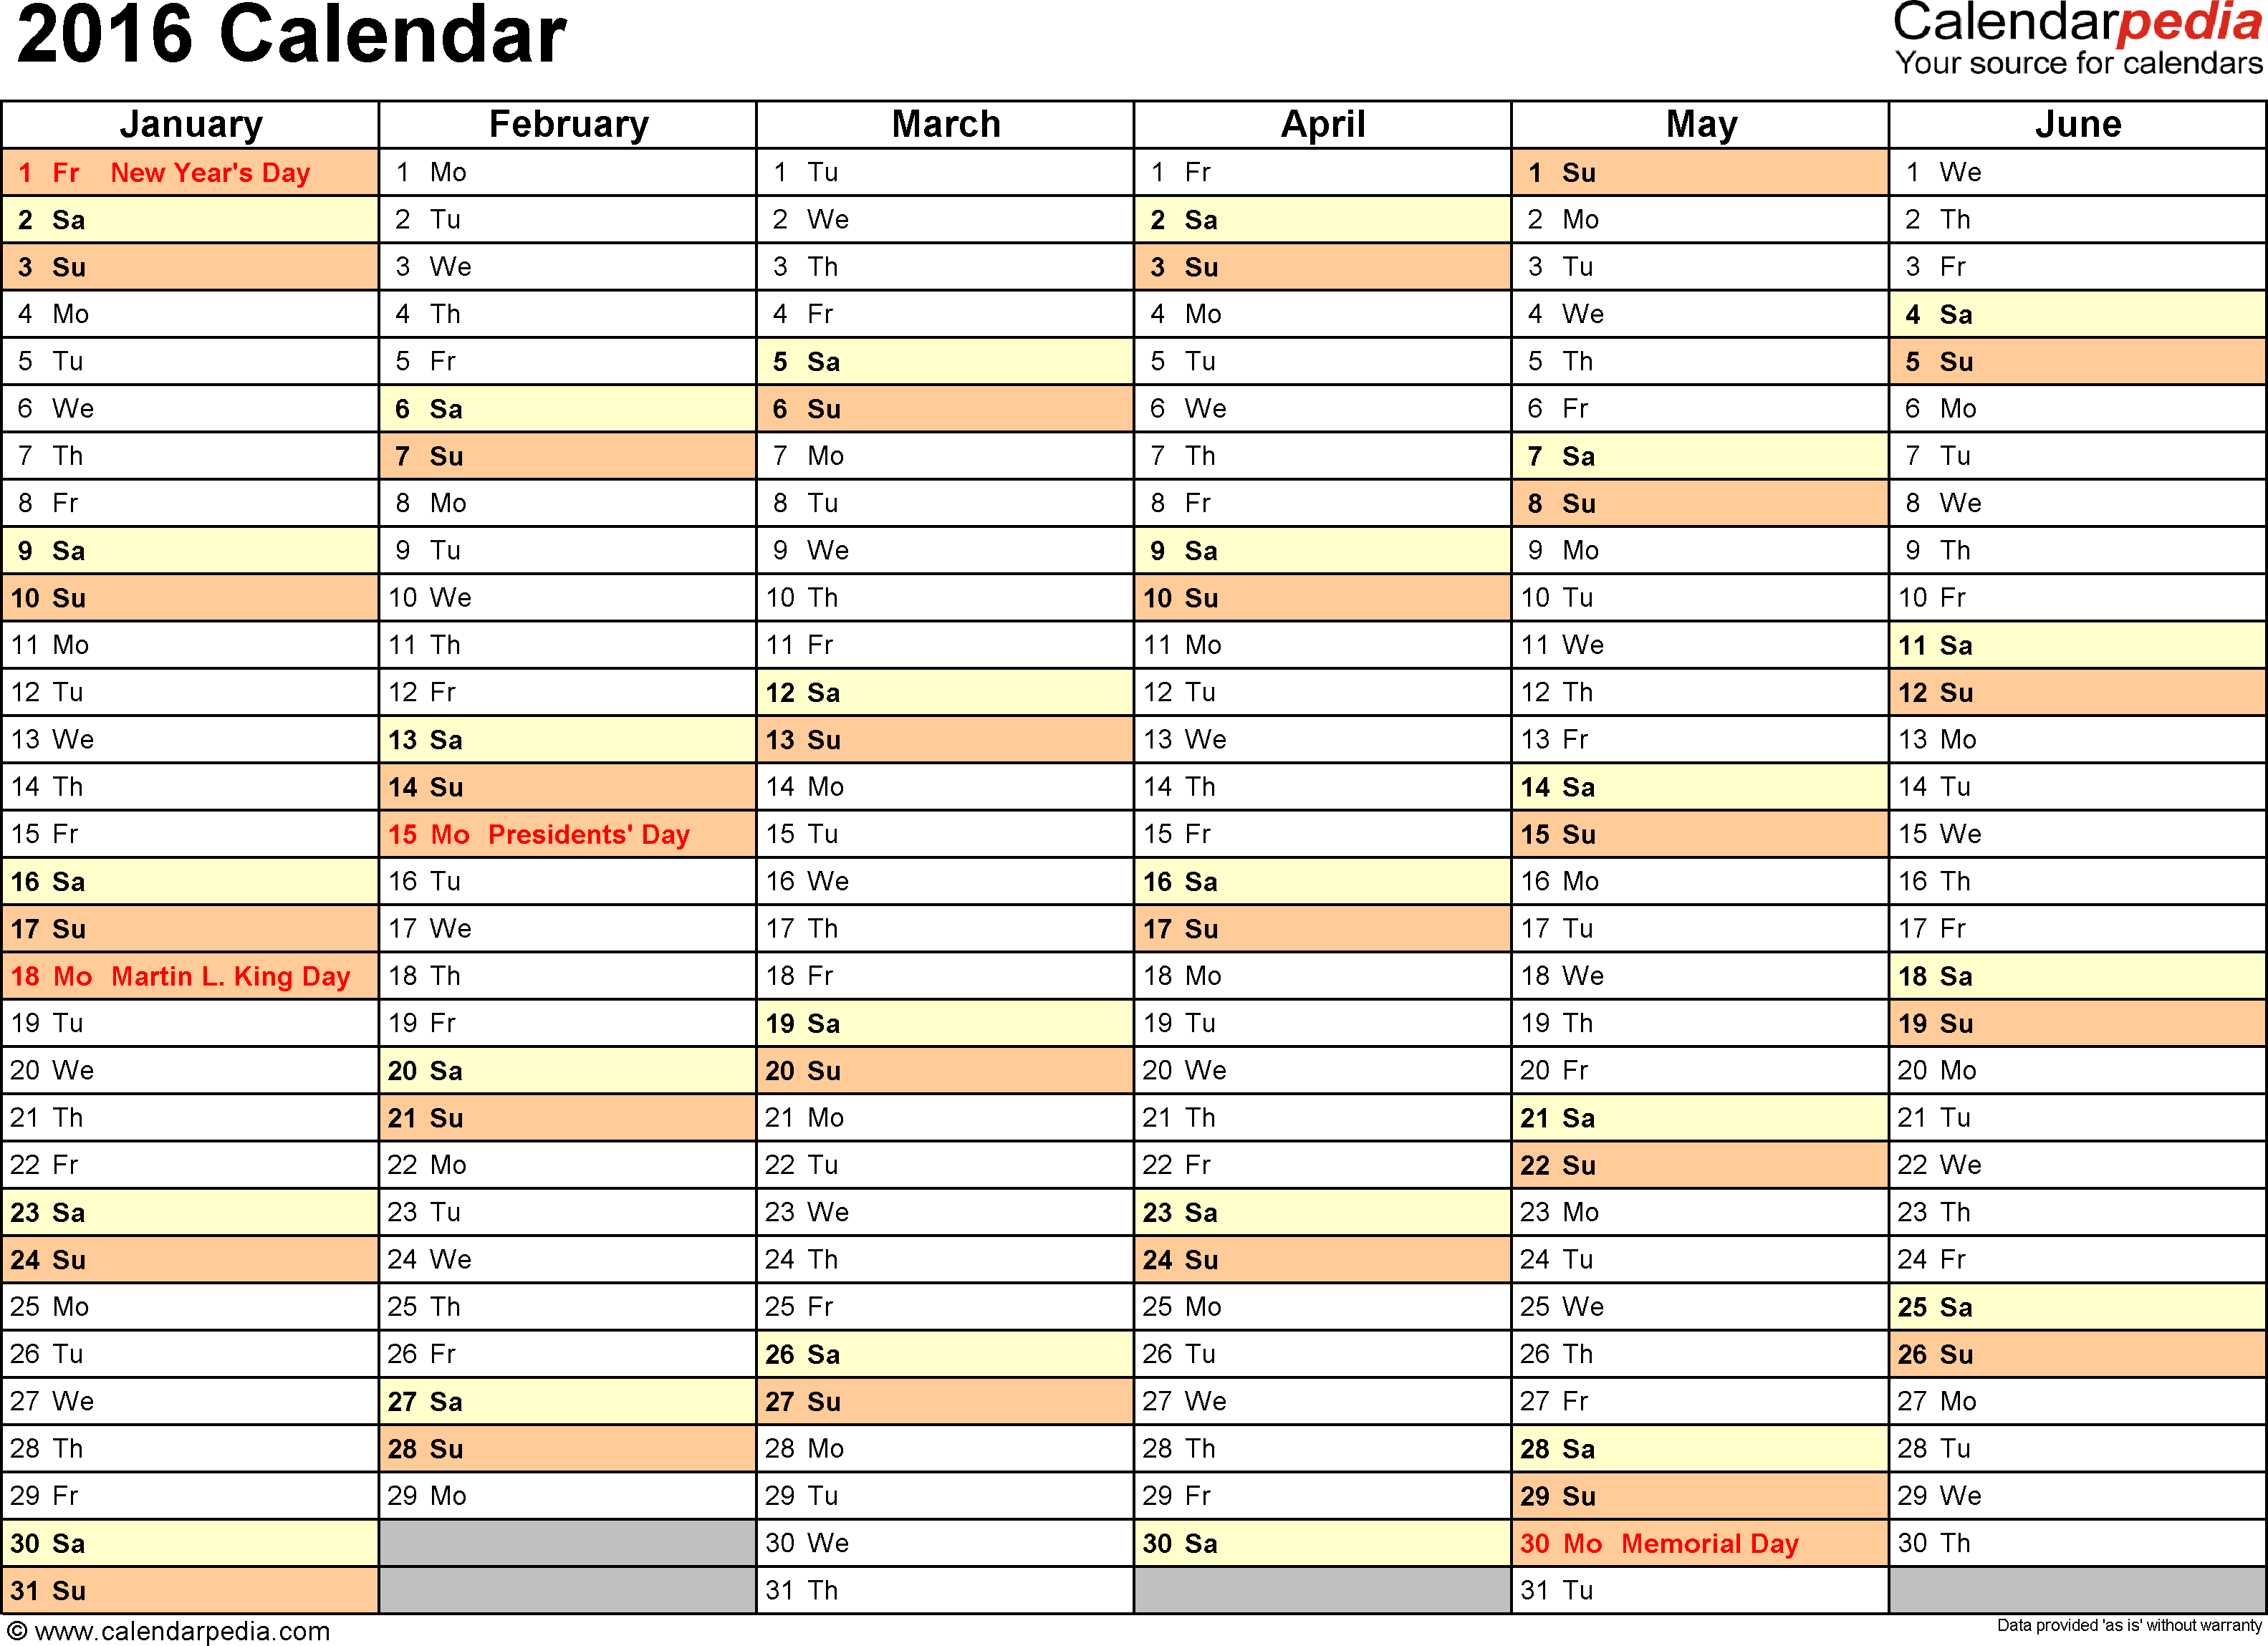 Ediblewildsus  Remarkable  Calendar  Download  Free Printable Excel Templates Xls With Fair Template   Calendar For Excel Months Horizontally  Pages Landscape Orientation With Endearing How Do You Enter A Formula In Excel Also Add Up A Column In Excel In Addition Relational Database Excel And Microsoft Excel Advanced Training As Well As Intercept Excel Additionally Interest Rate Excel From Calendarpediacom With Ediblewildsus  Fair  Calendar  Download  Free Printable Excel Templates Xls With Endearing Template   Calendar For Excel Months Horizontally  Pages Landscape Orientation And Remarkable How Do You Enter A Formula In Excel Also Add Up A Column In Excel In Addition Relational Database Excel From Calendarpediacom